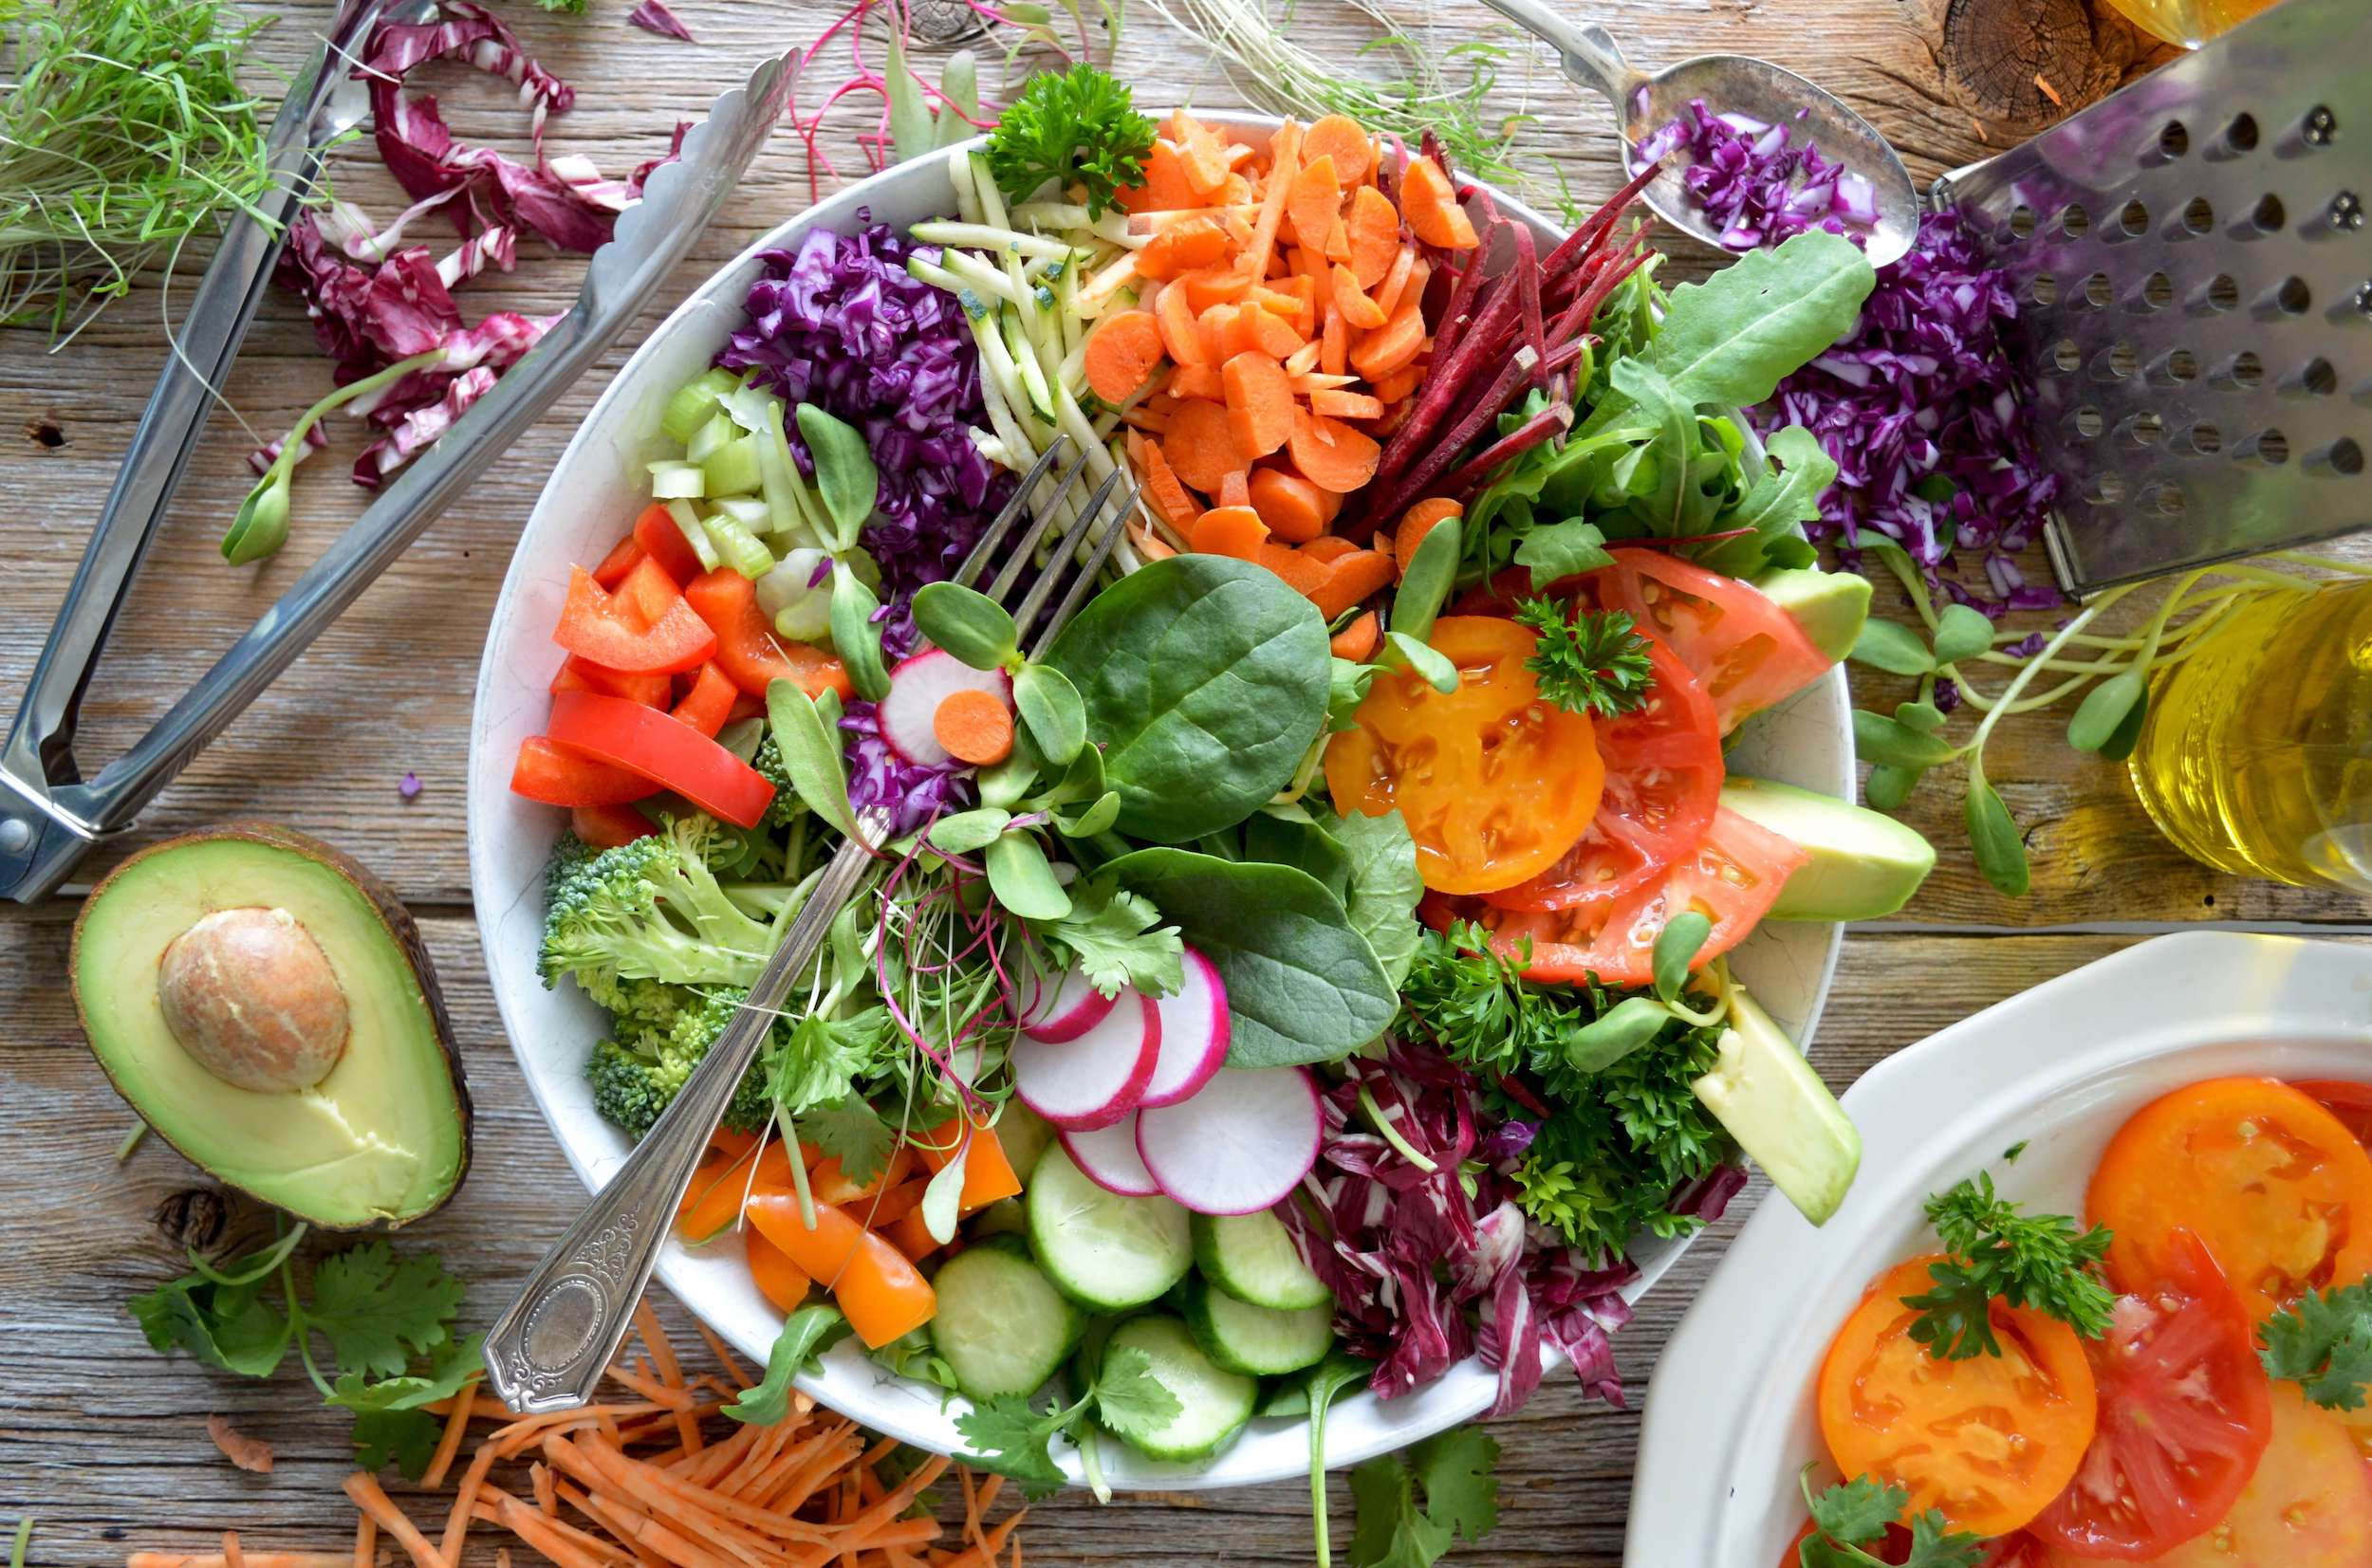 Plate of colourful vegan food and colourful salad